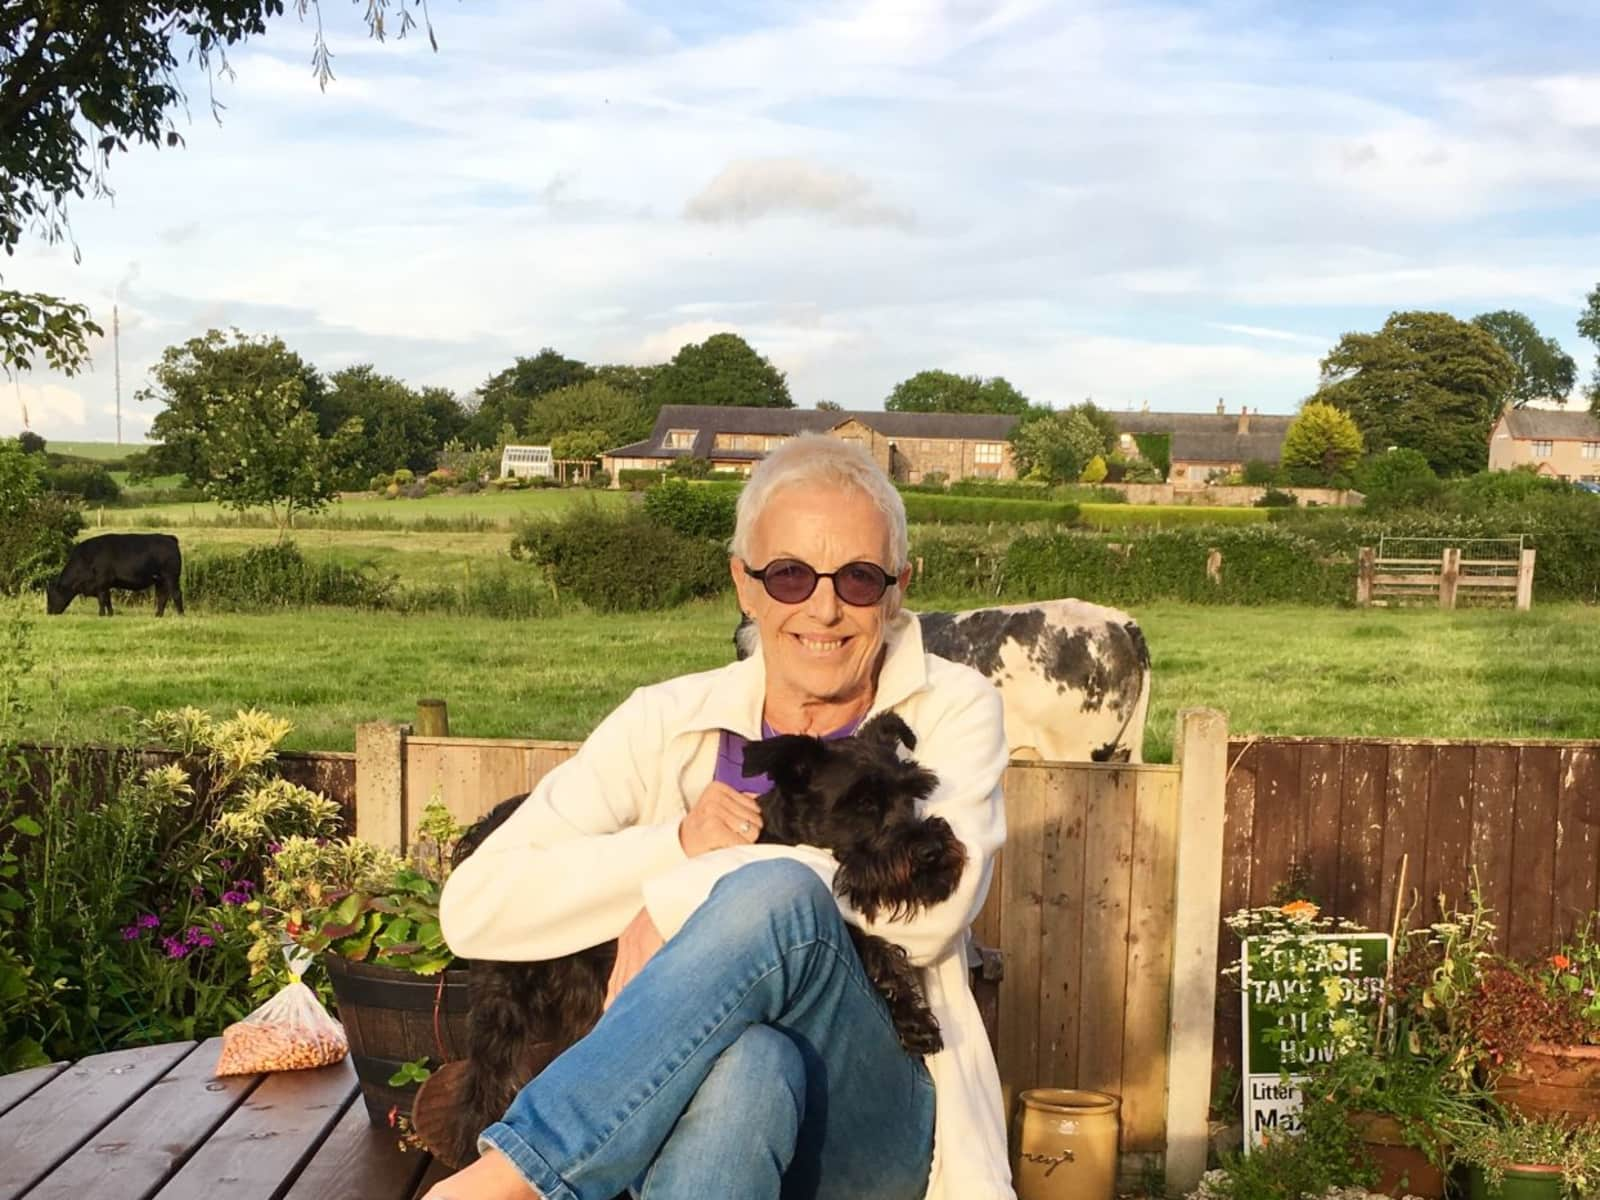 Wendy from Lancaster, United Kingdom